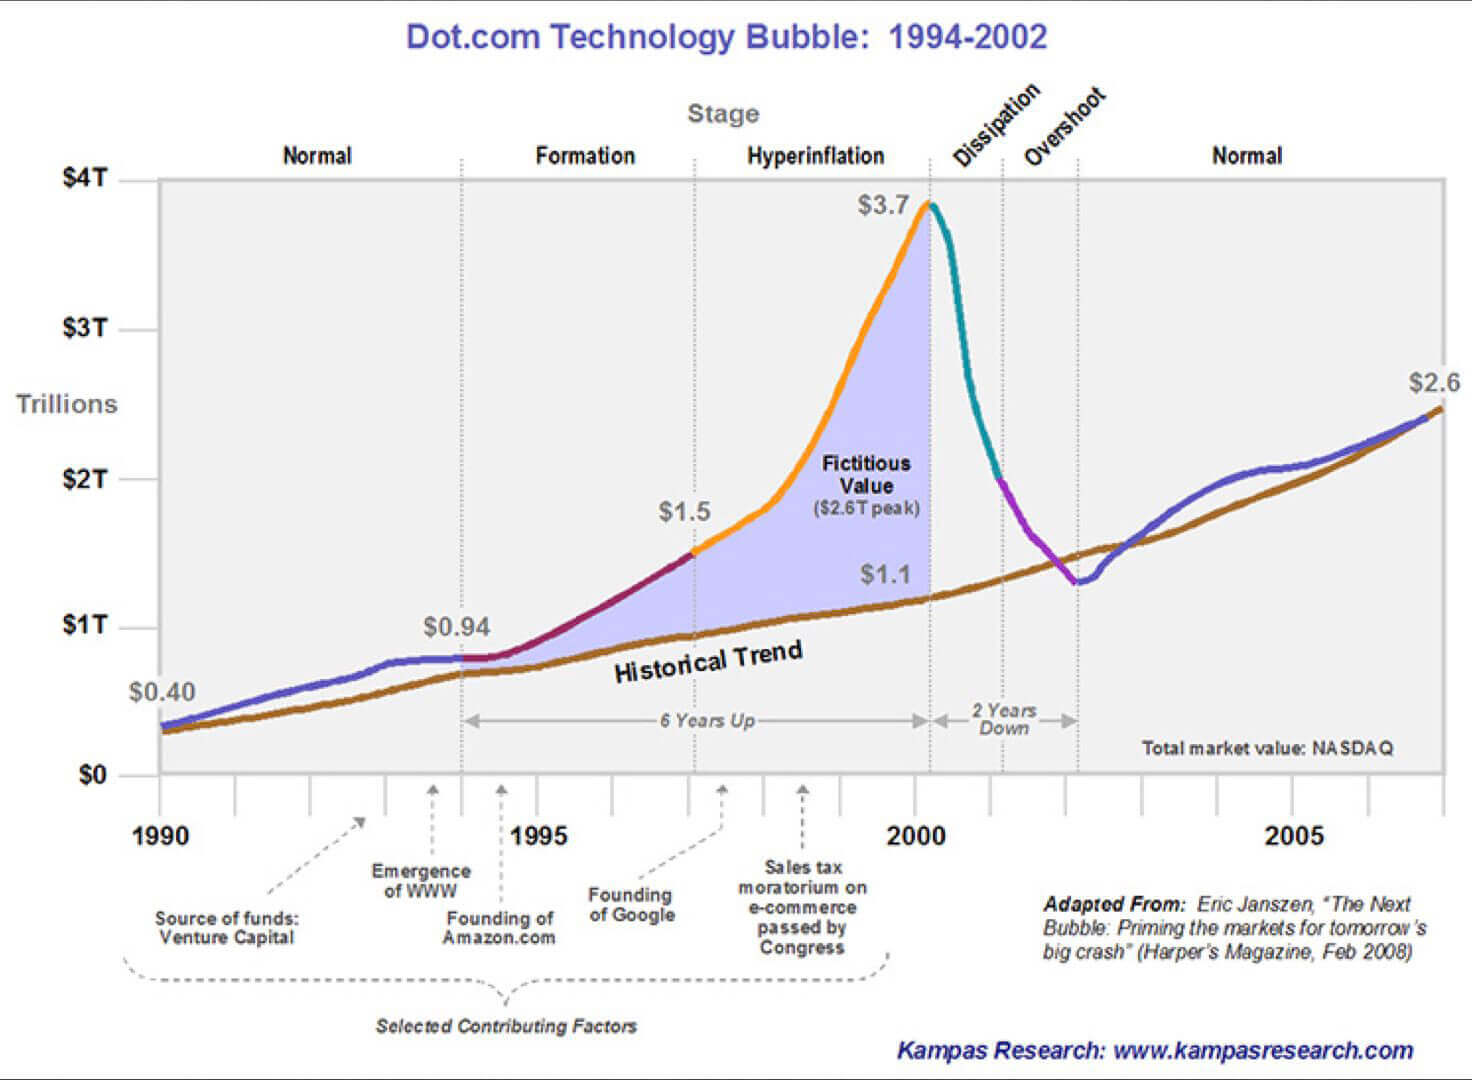 The technology Bubble by Daniel Khan